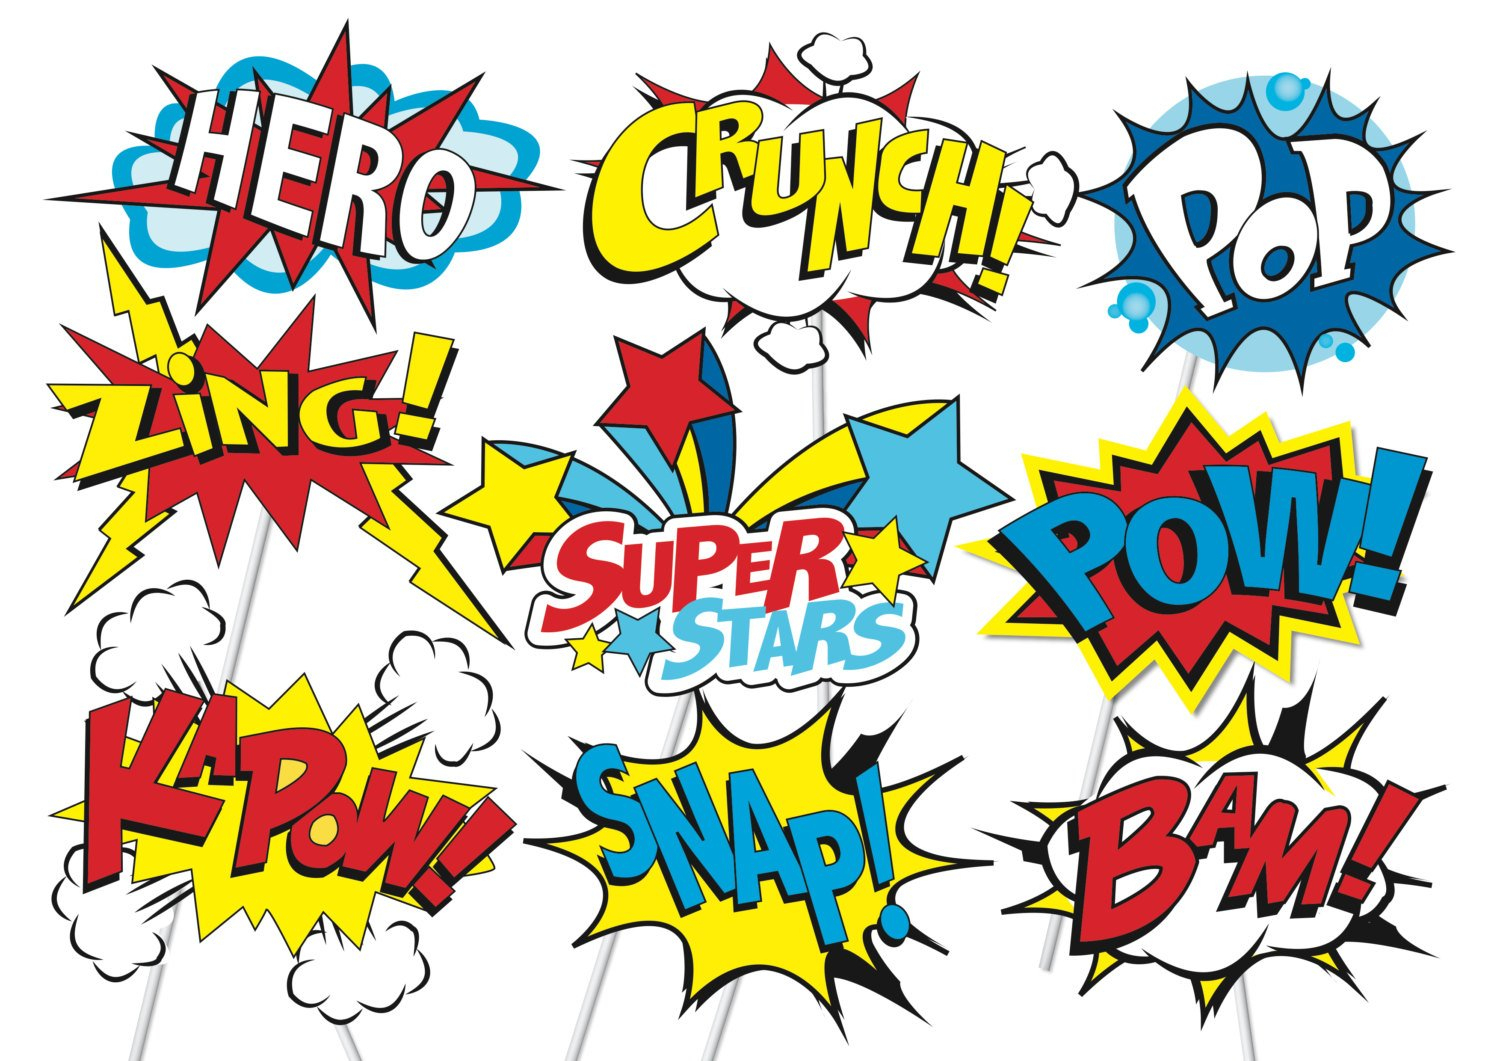 Superhero Action Party Photo Booth Props Or Superhero Cake Toppers - Free Printable Superhero Photo Booth Props